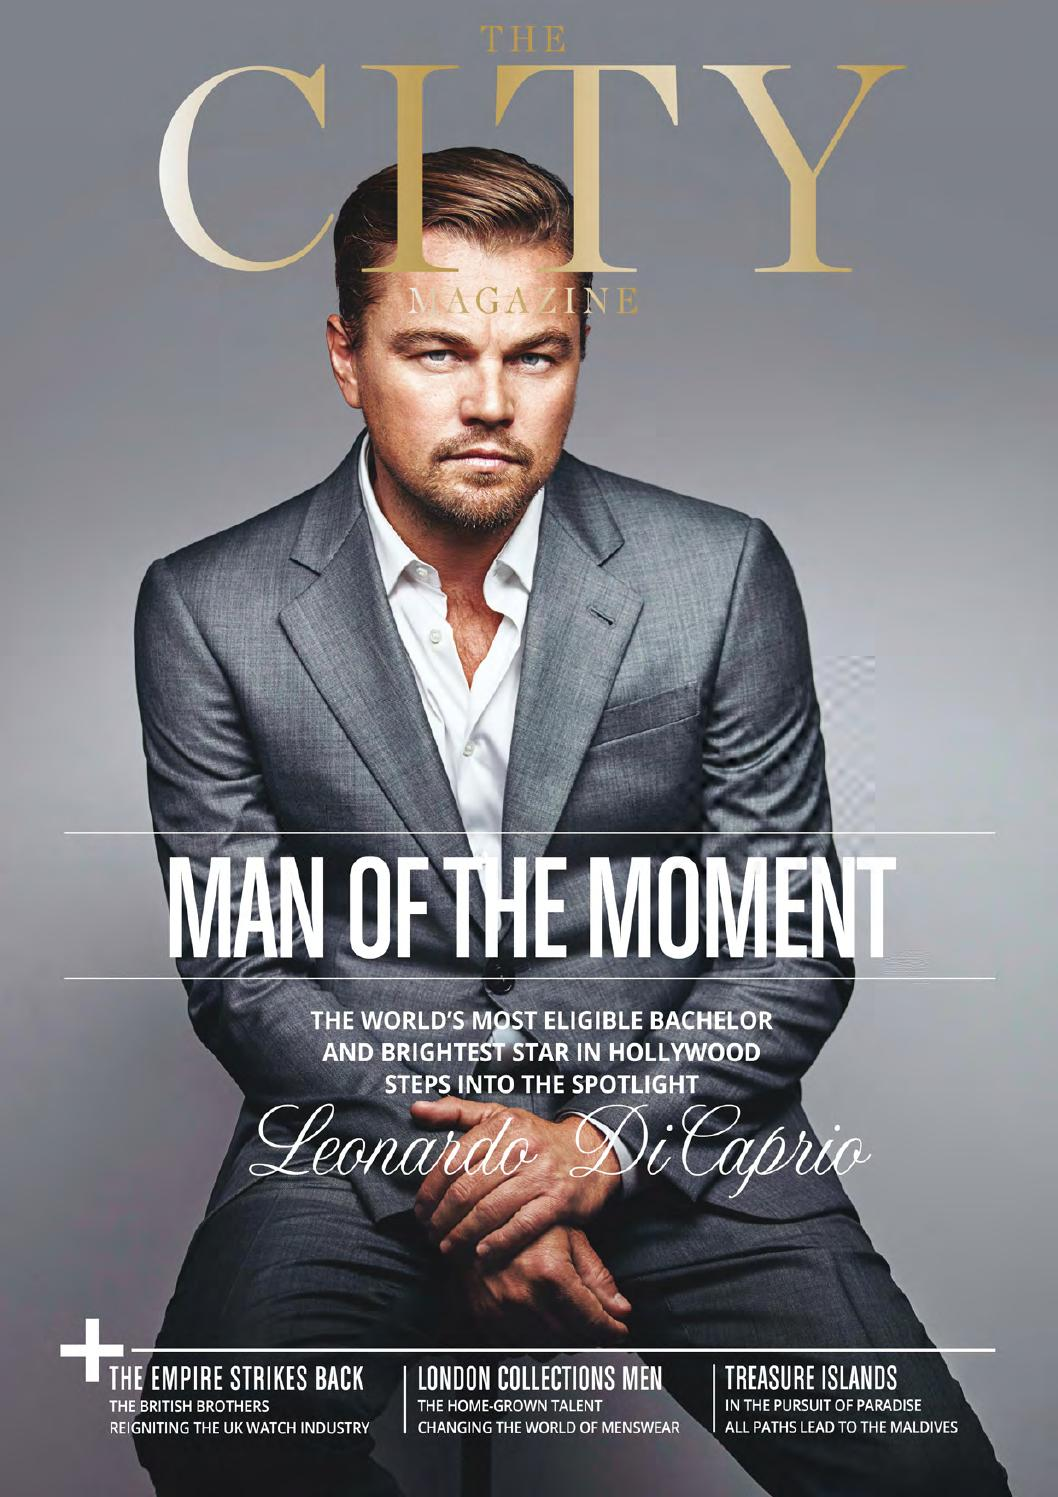 The City Magazine February 2016 by Runwild Media Group issuu